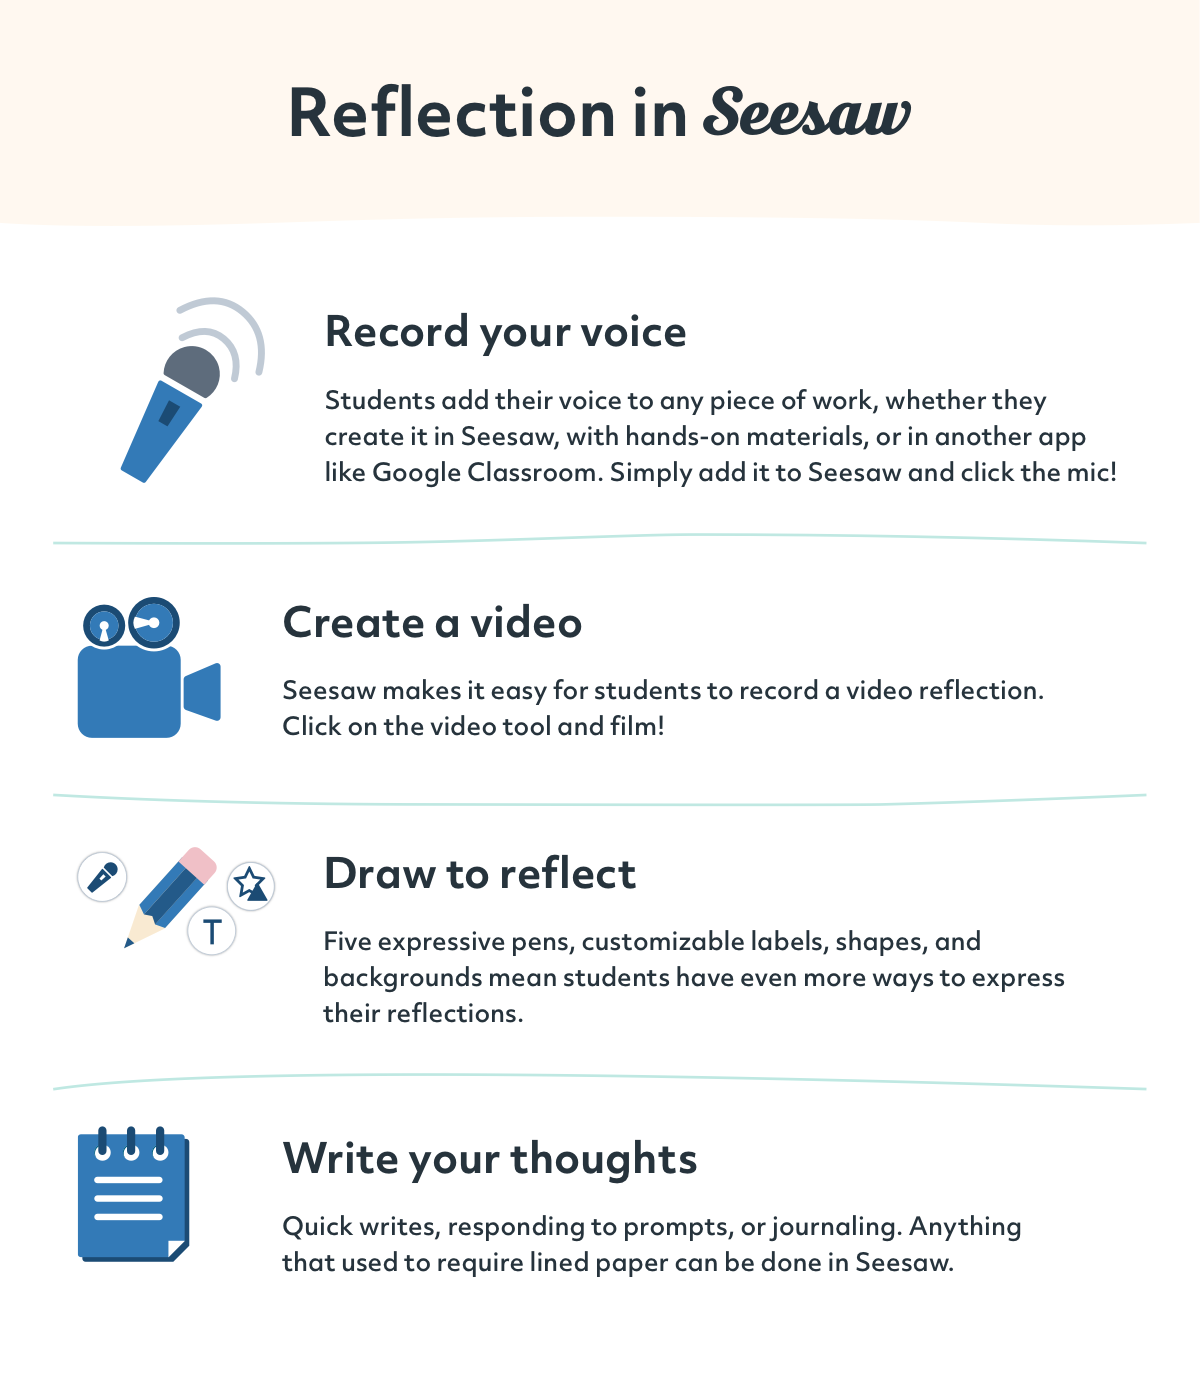 Add layers of reflection to any piece of work with Seesaw